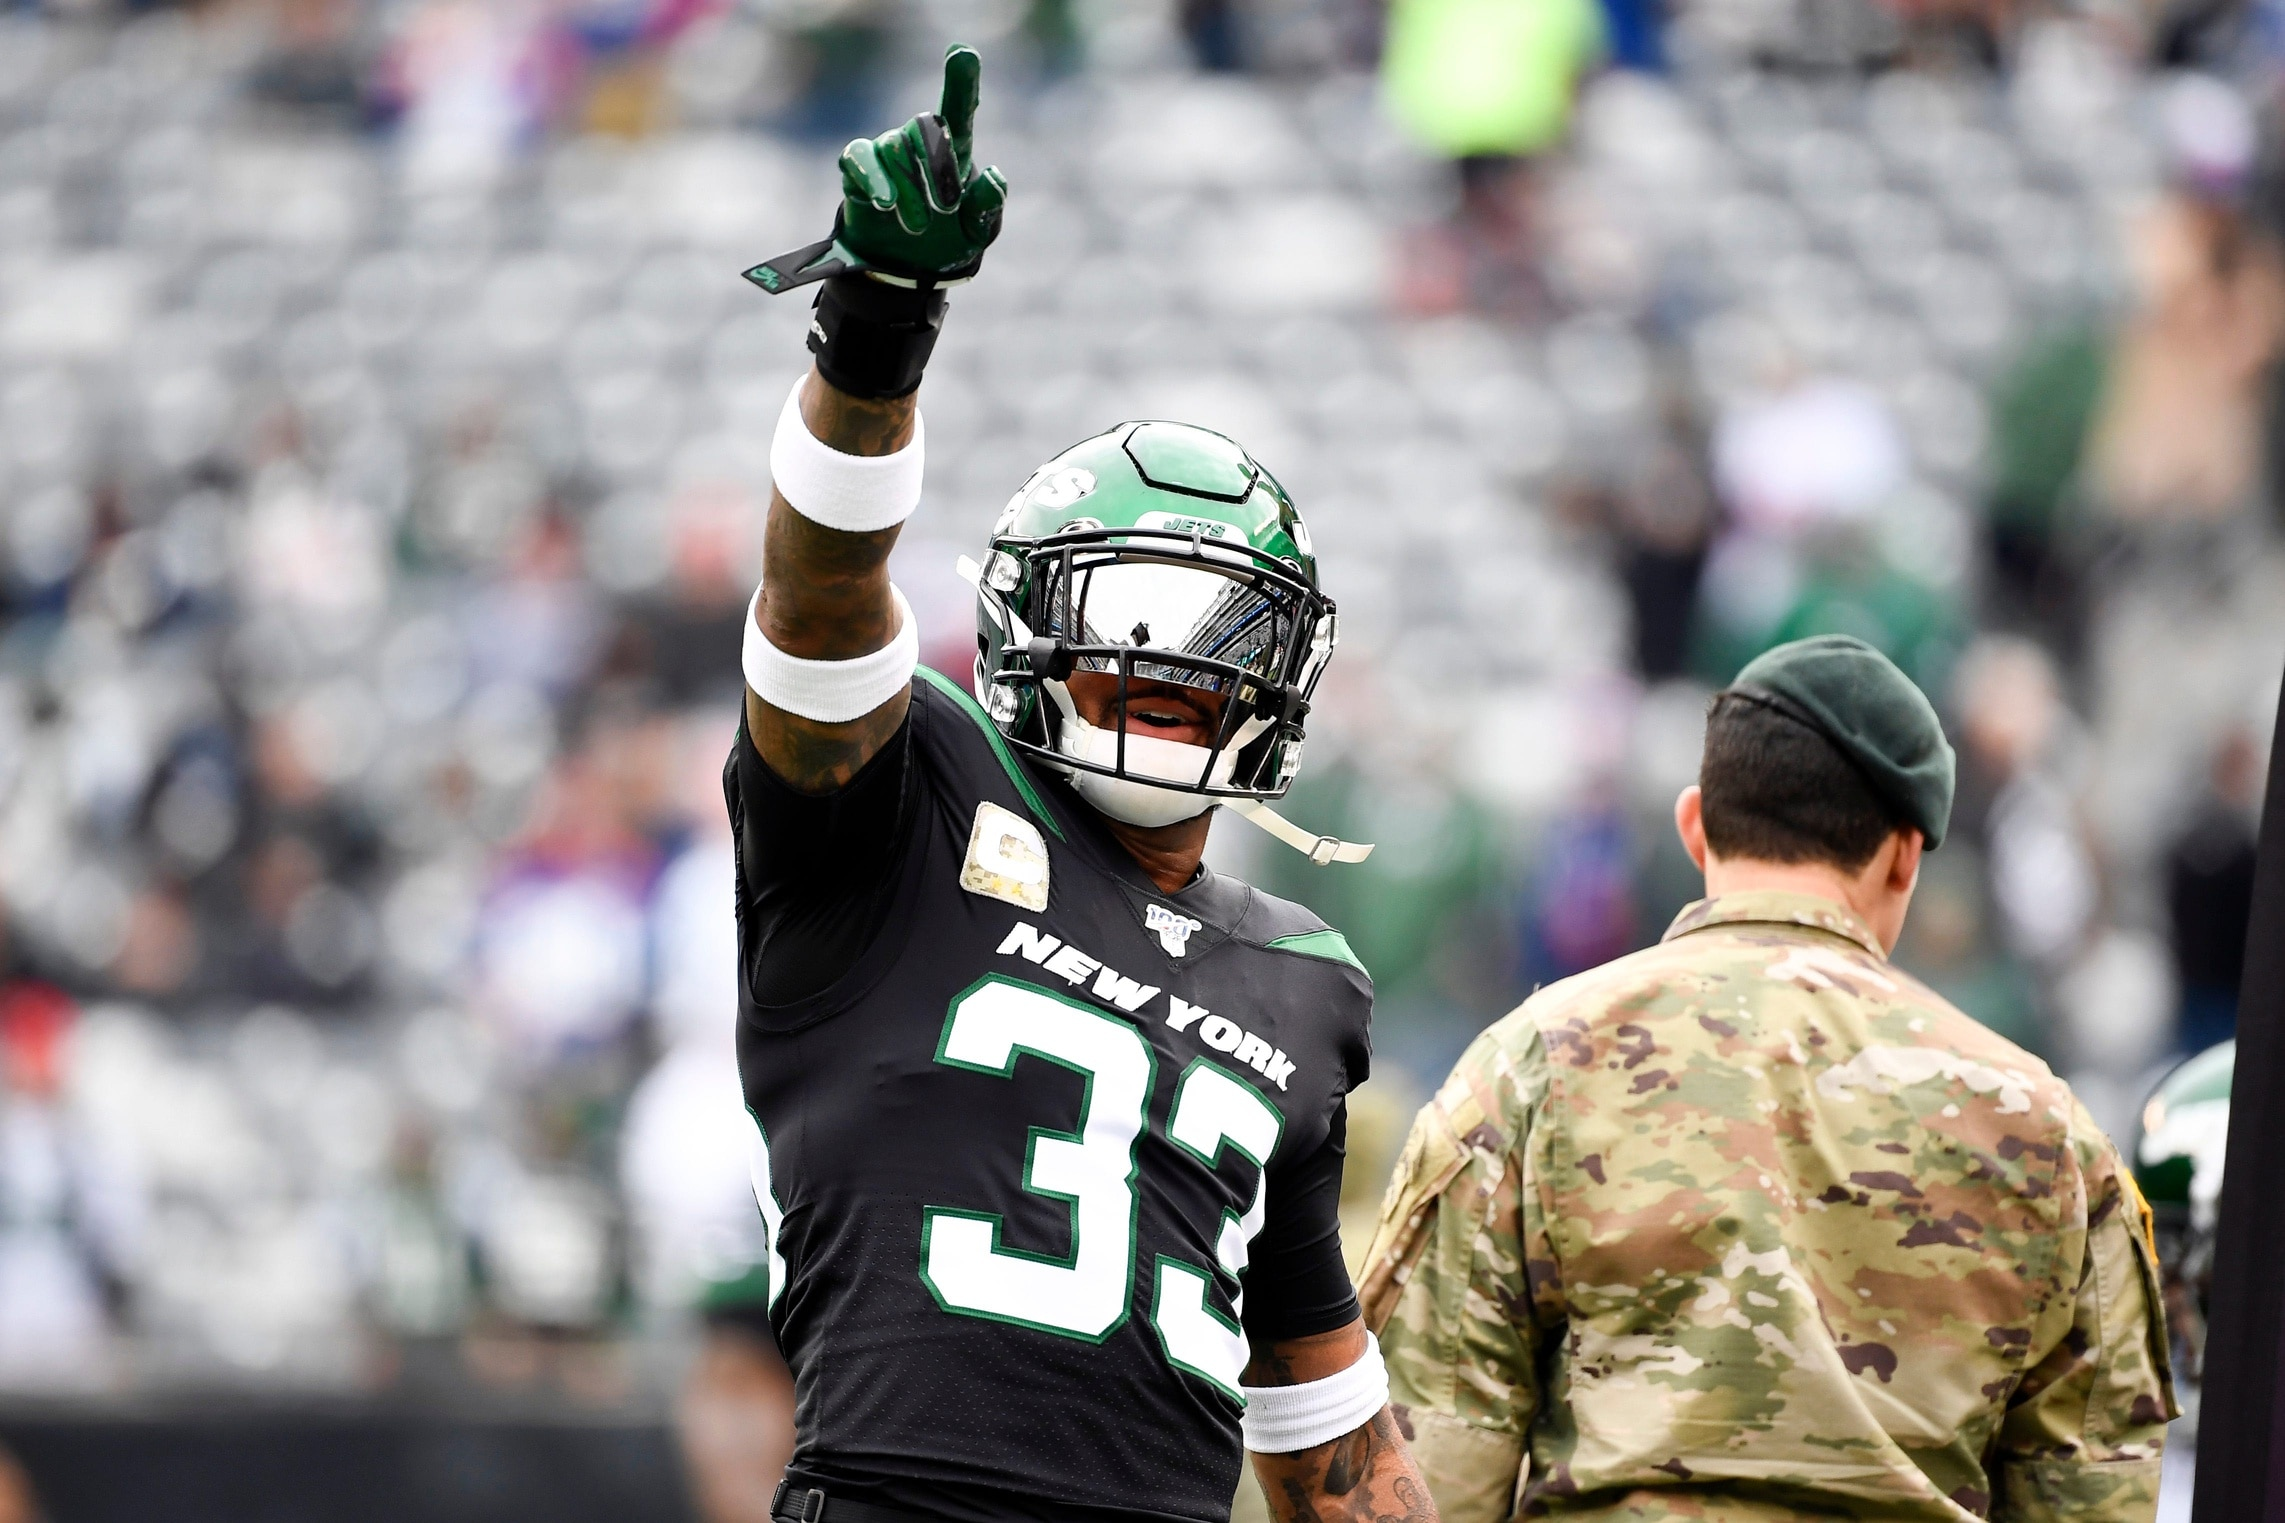 Report Jets Trade All Pro Safety Jamal Adams To The Seahawks Sportsnaut